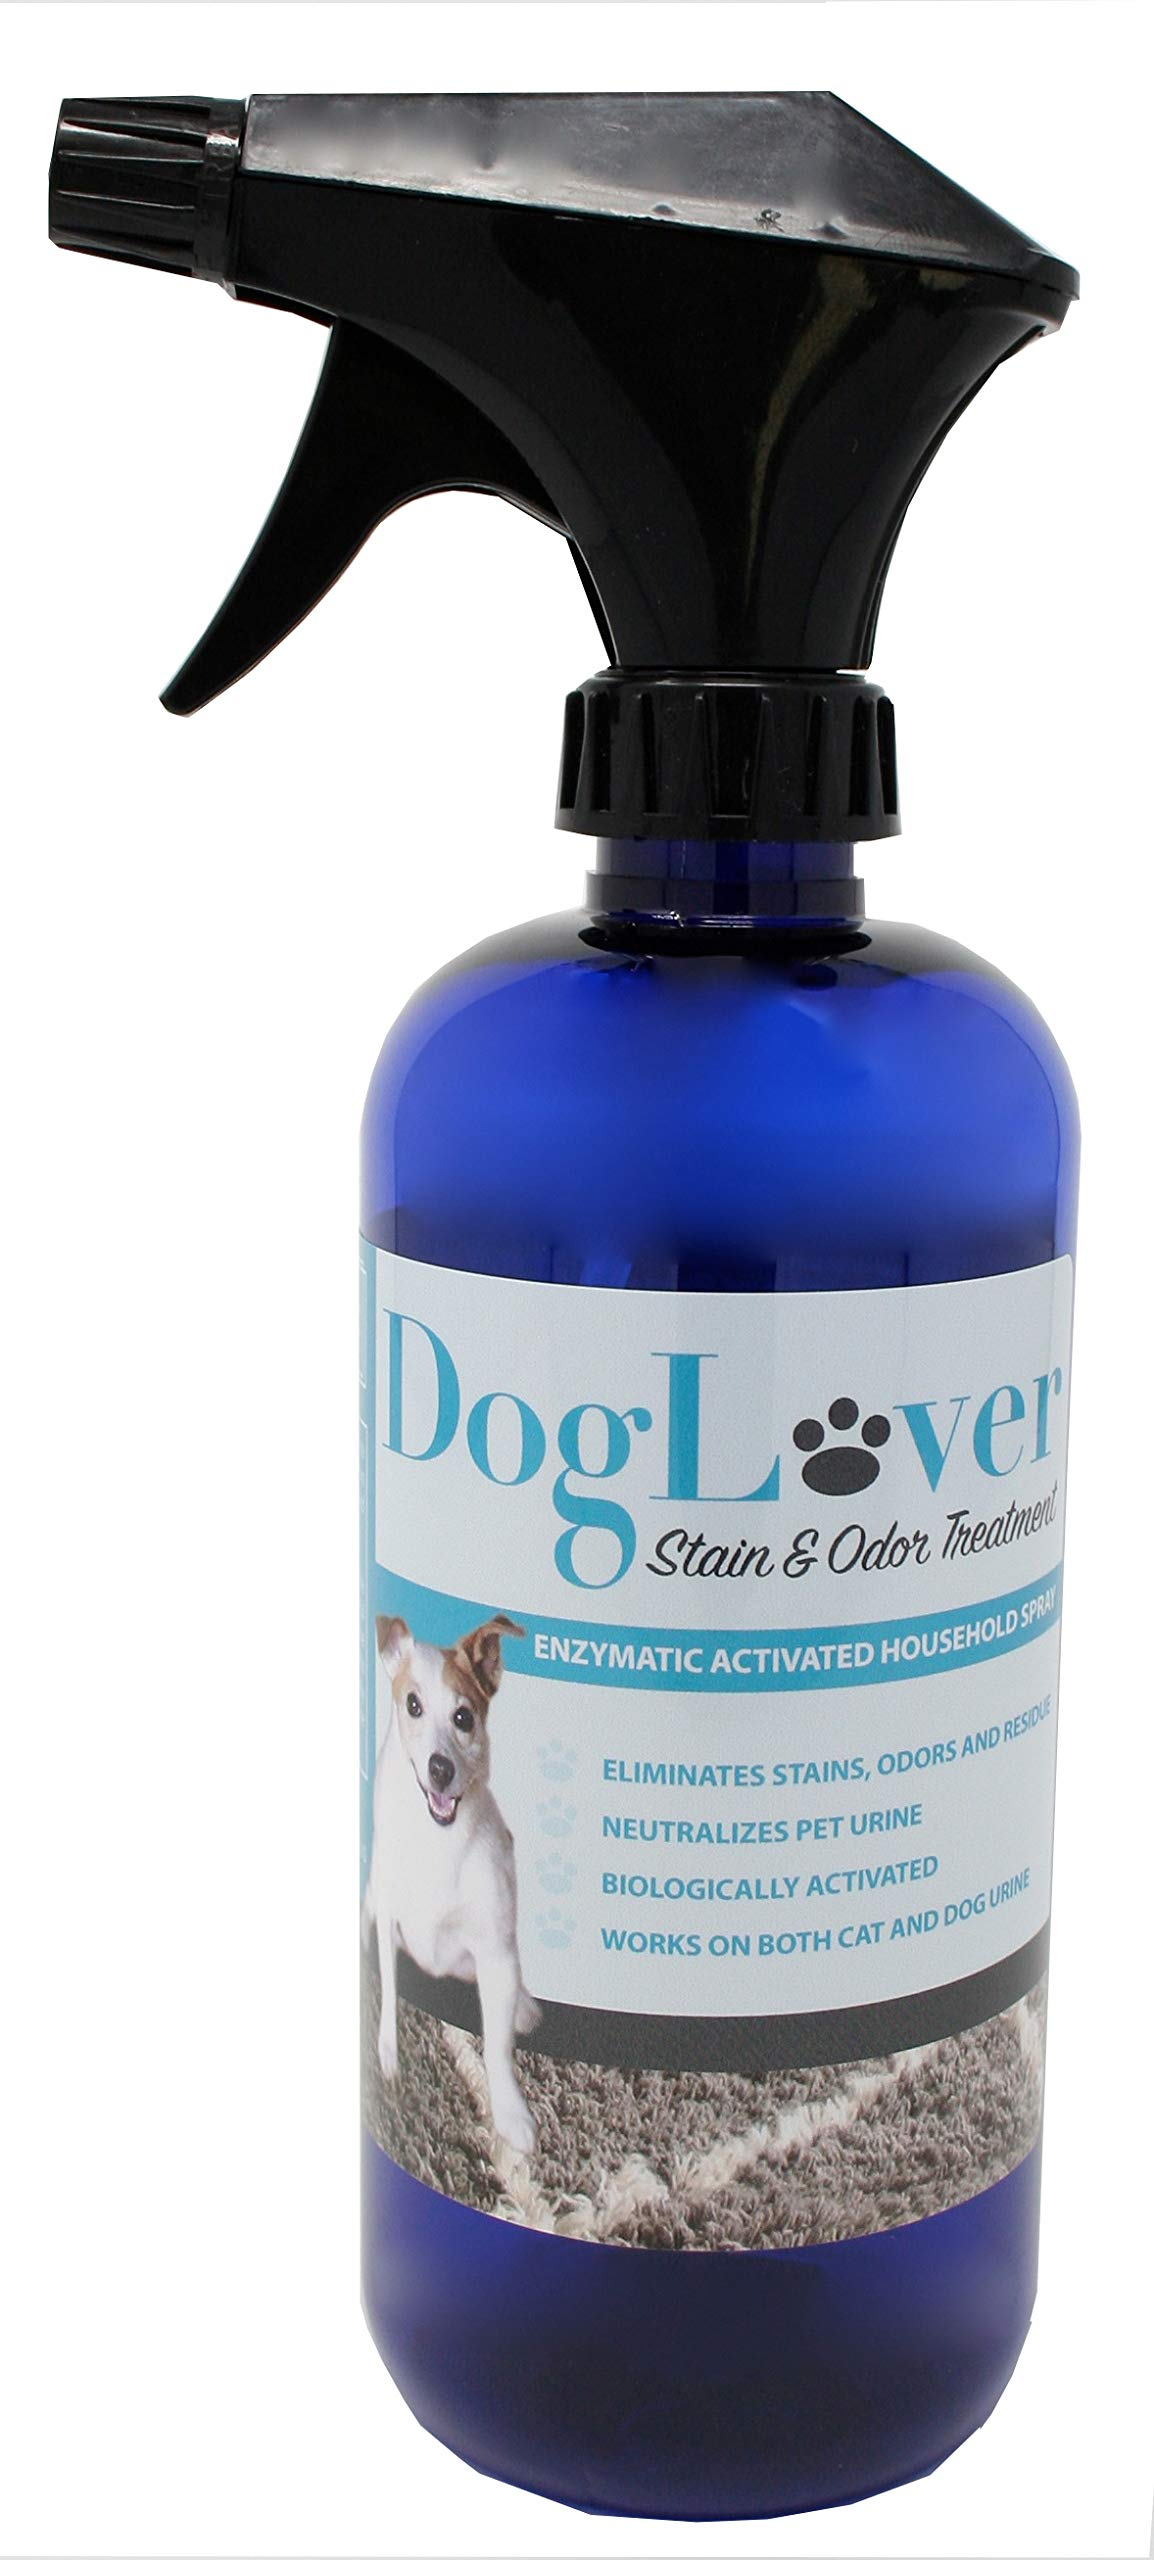 Dog Lover Stain and Odor Treatment 16 oz